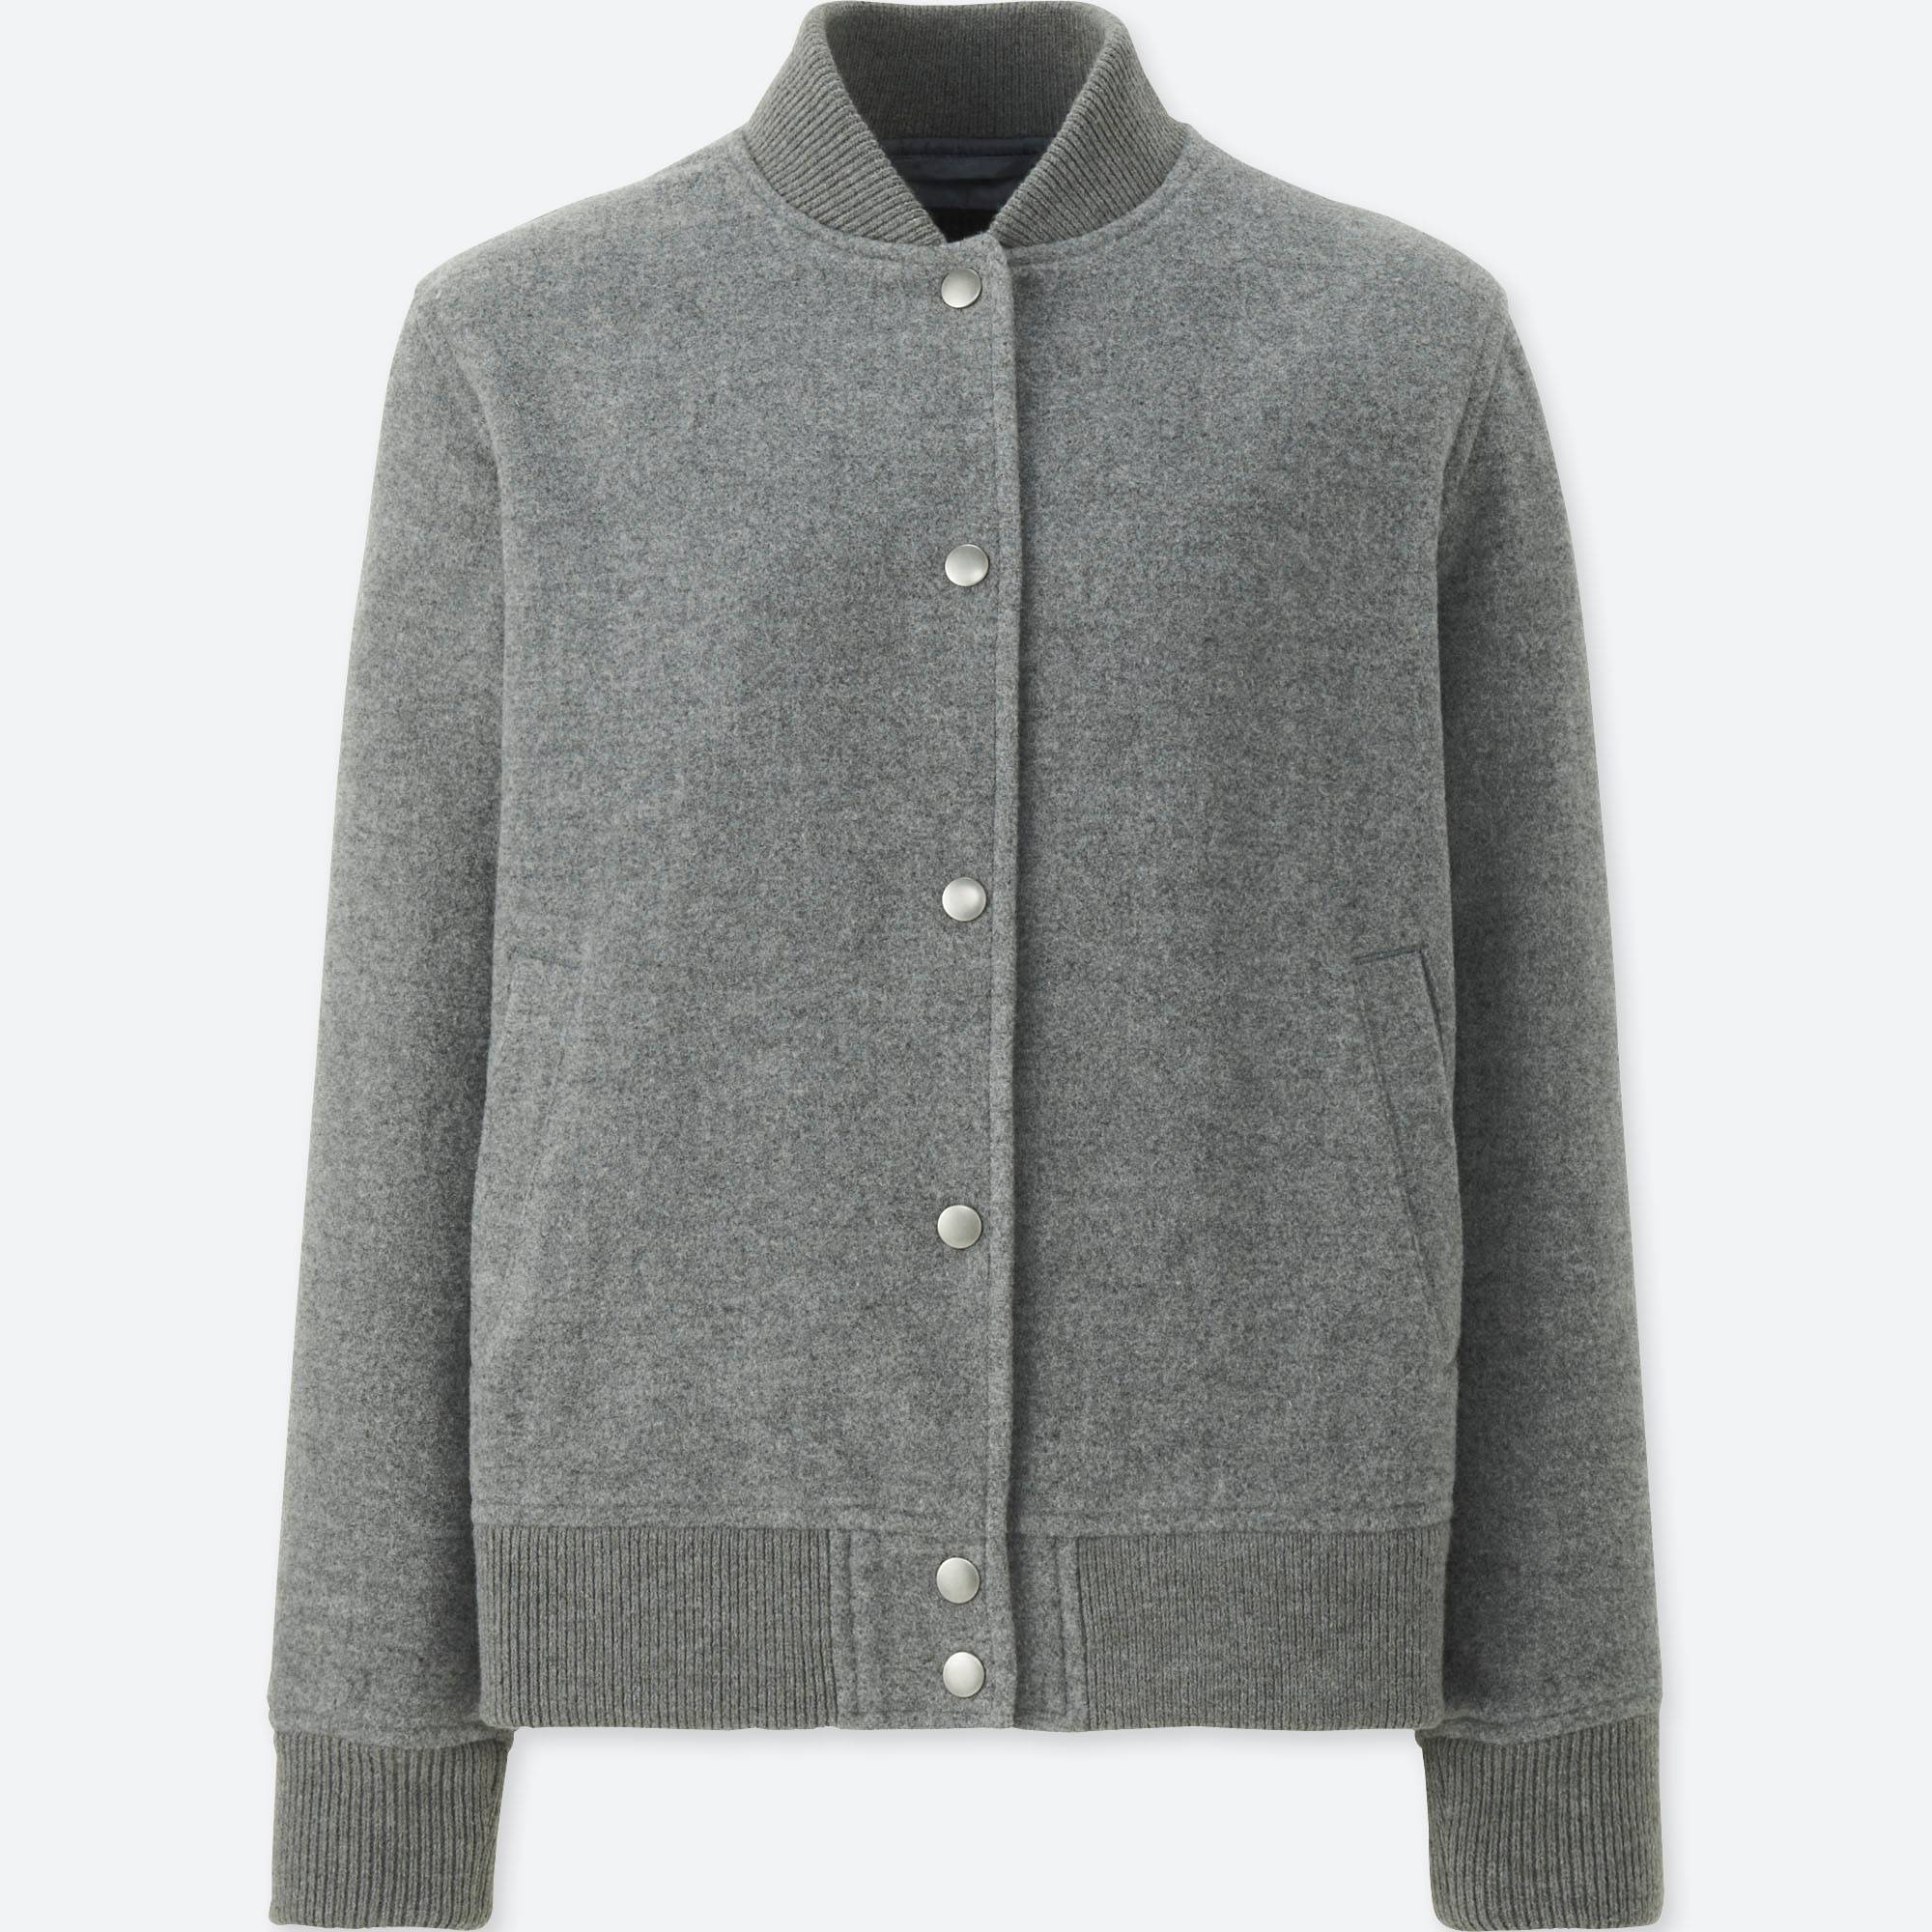 WOMEN WOOL-BLEND BOMBER JACKET | UNIQLO US